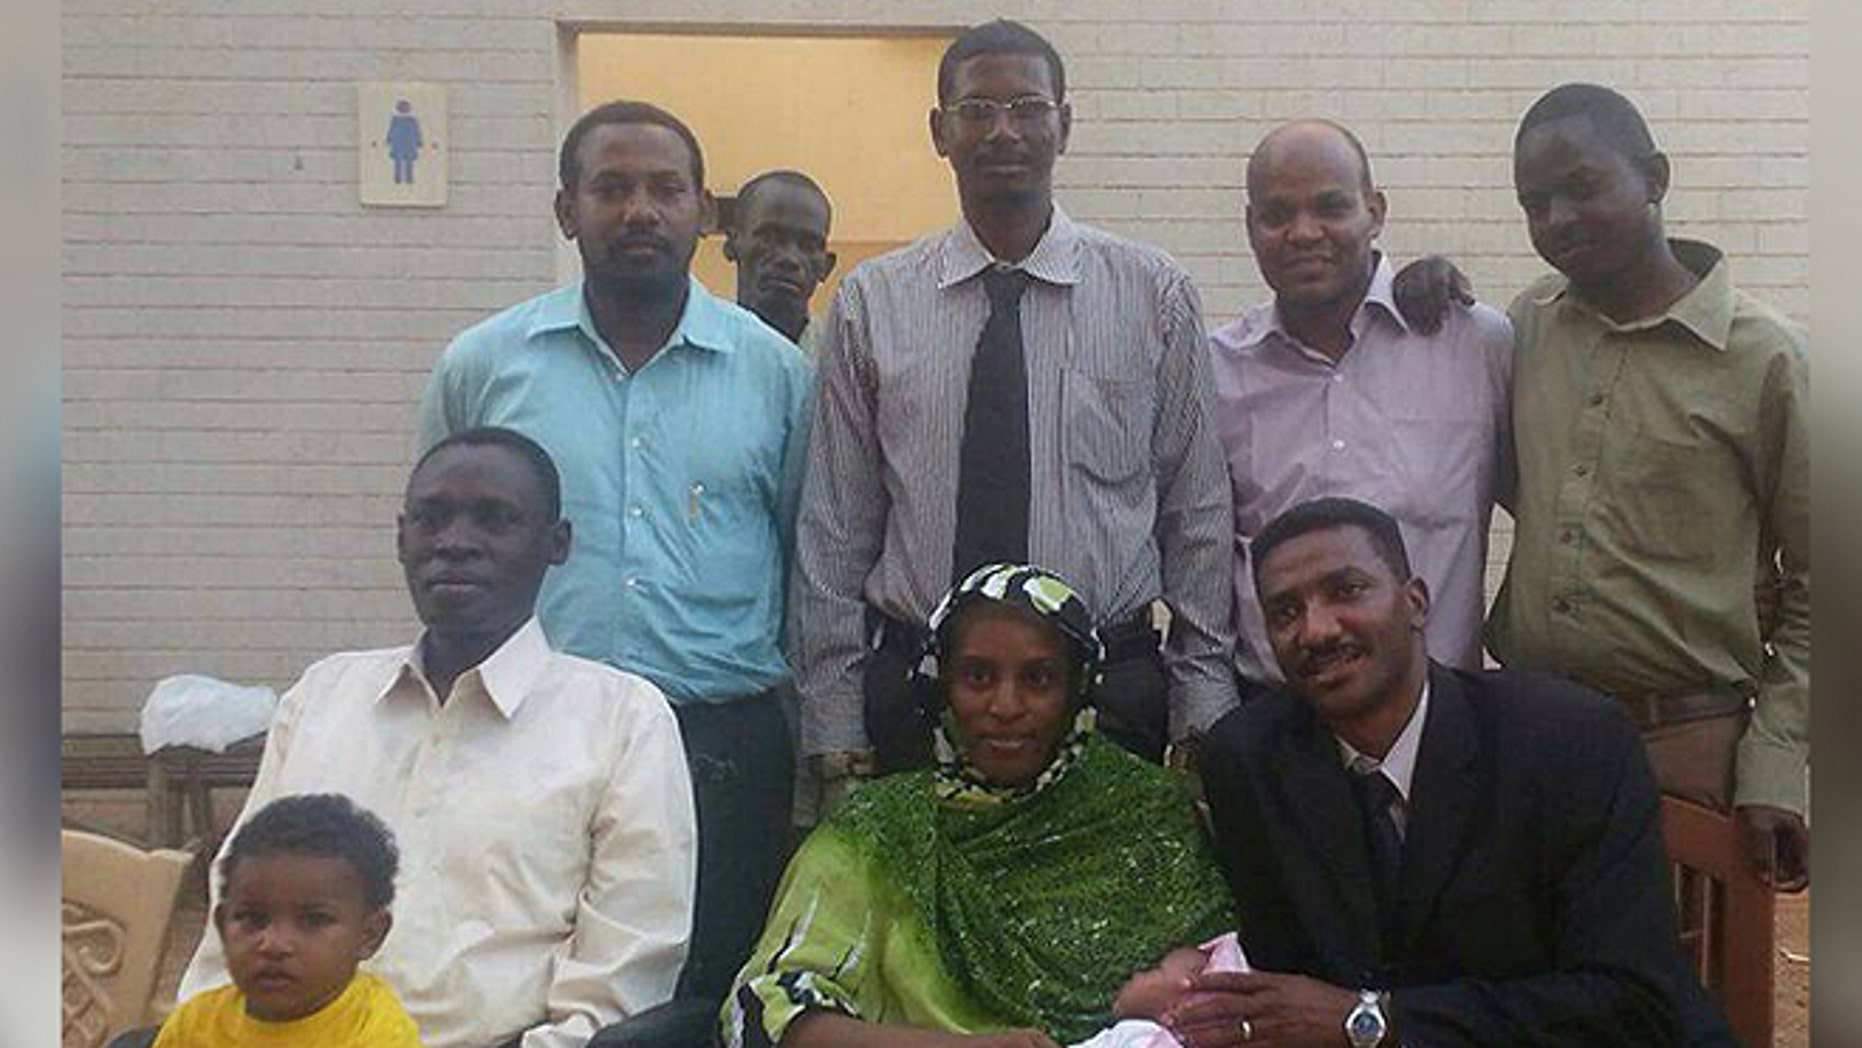 Meriam Ibrahim, with husband Daniel Wani and children Martin and Maya along with their legal team following her release from a Karthoum prison.